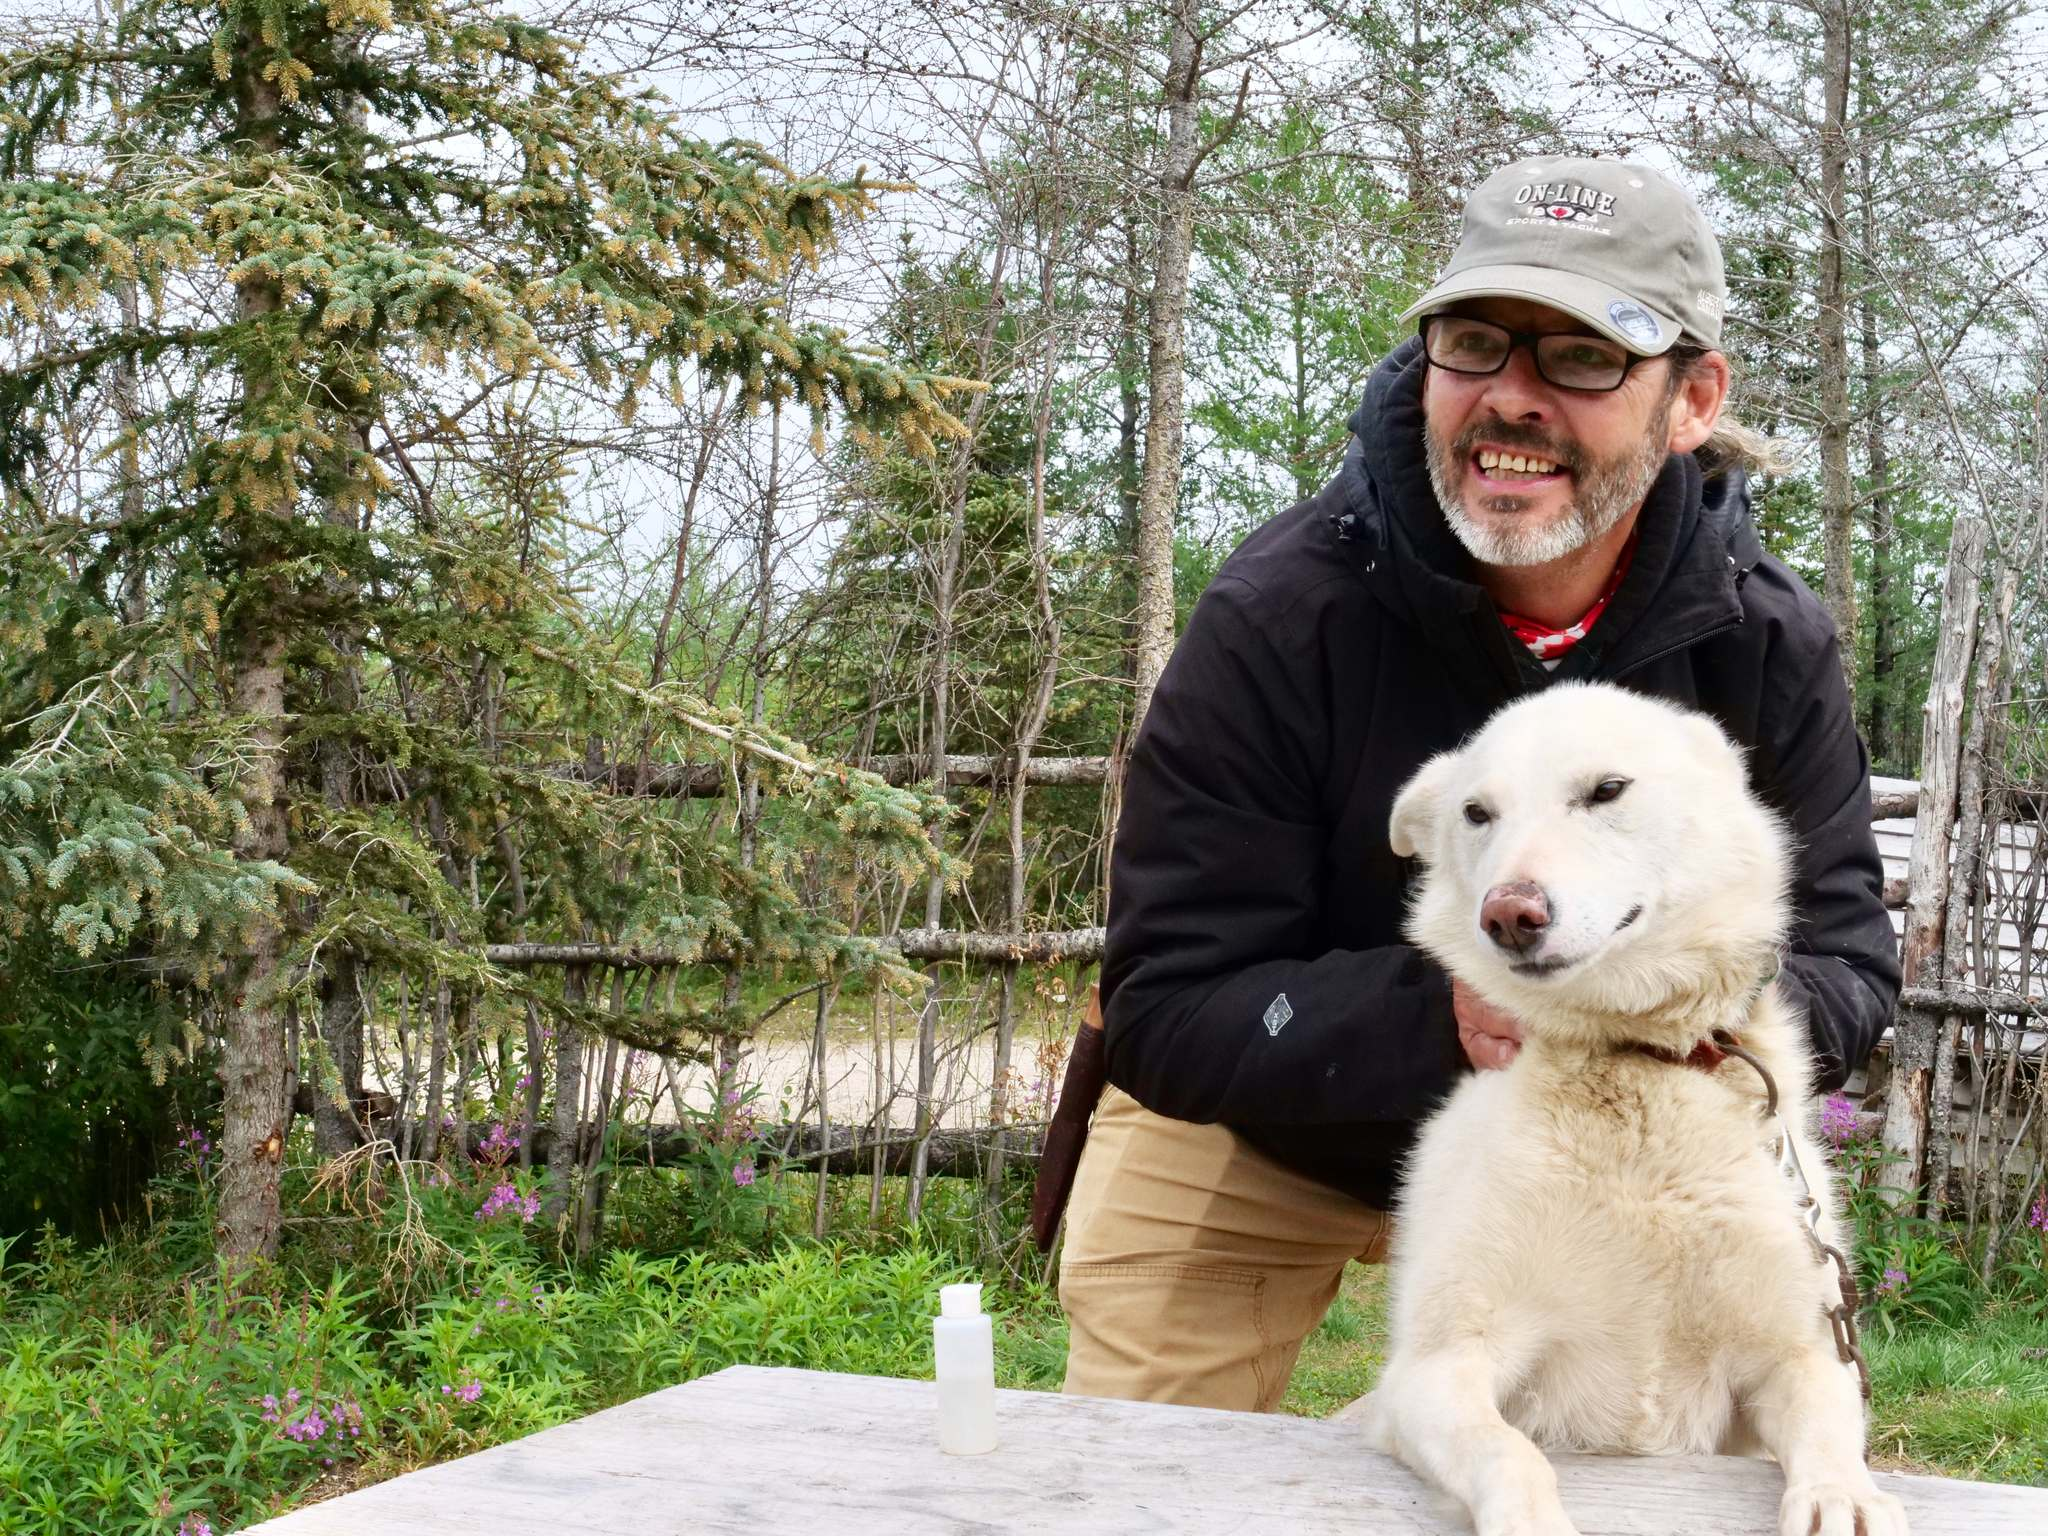 Dave Daley rubs one of his sled dogs down with insect repellant before taking the dogs for a run.